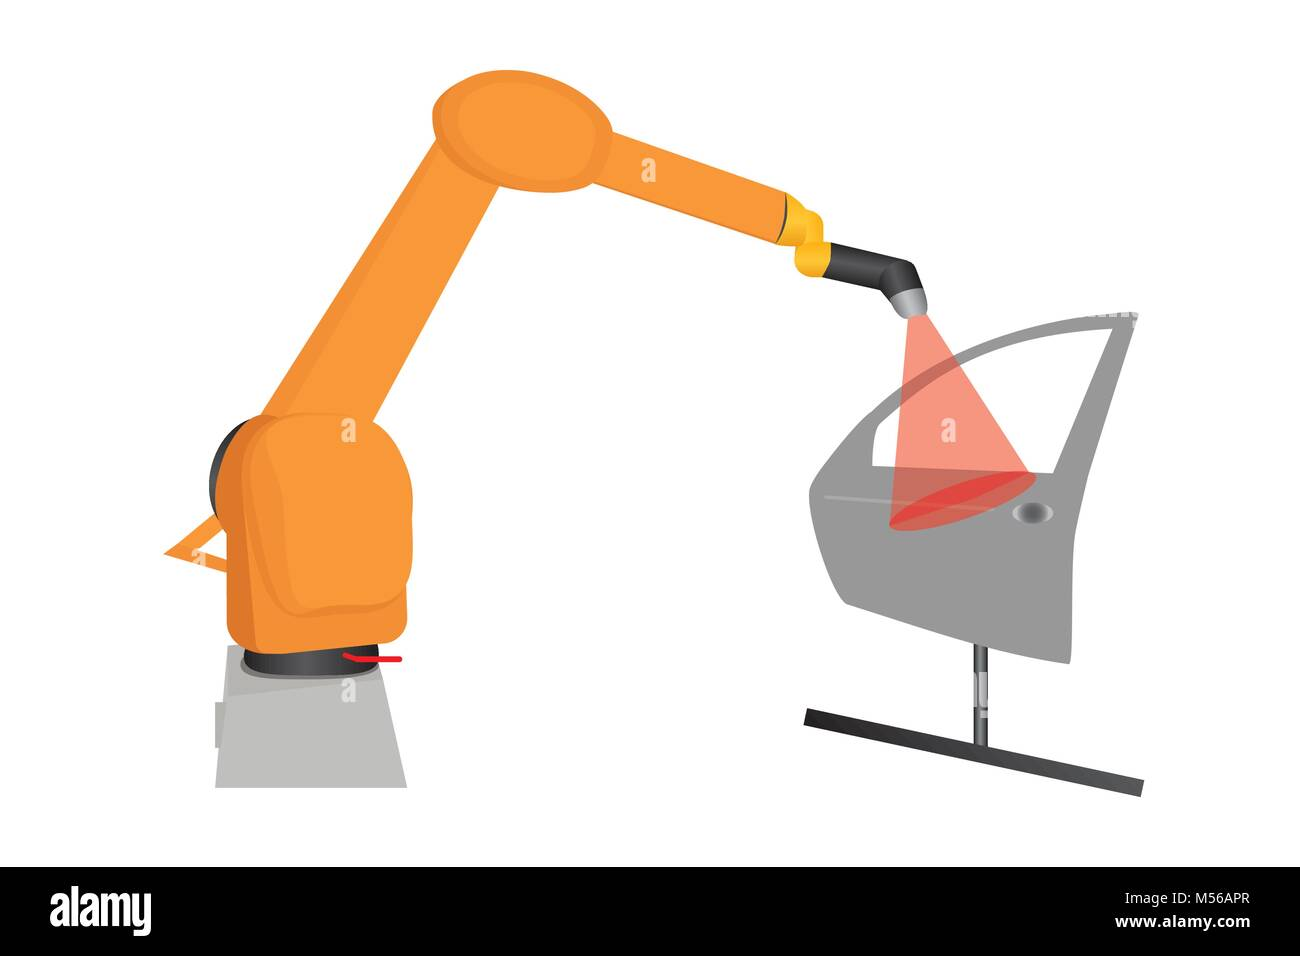 Illustration of industry robot testing produced car door for defects, vector of laser robot doing audit of car door/ - Stock Vector